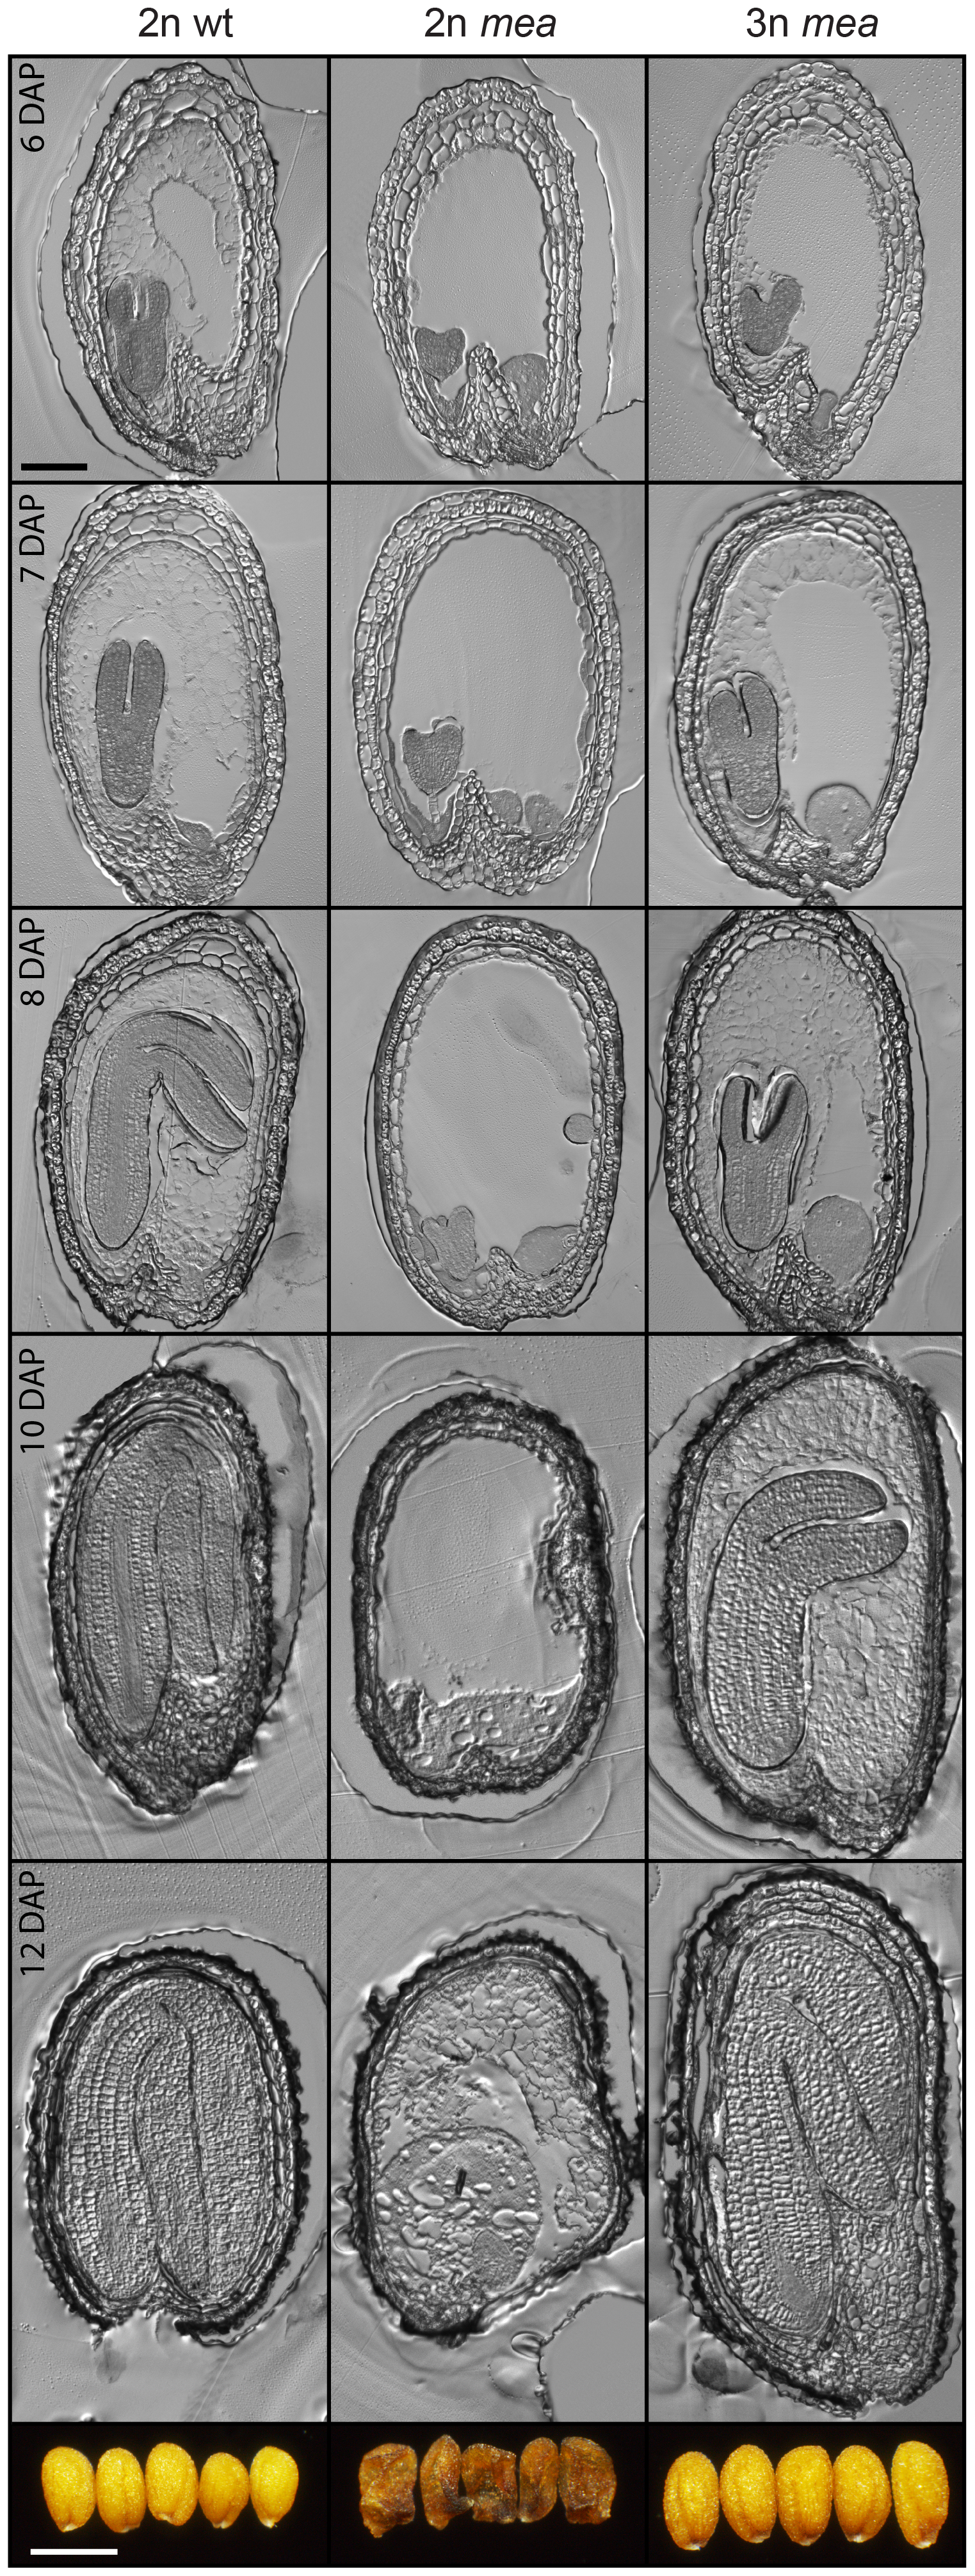 Endosperm Cellularization Is Restored in Triploid <i>mea</i> Seeds.